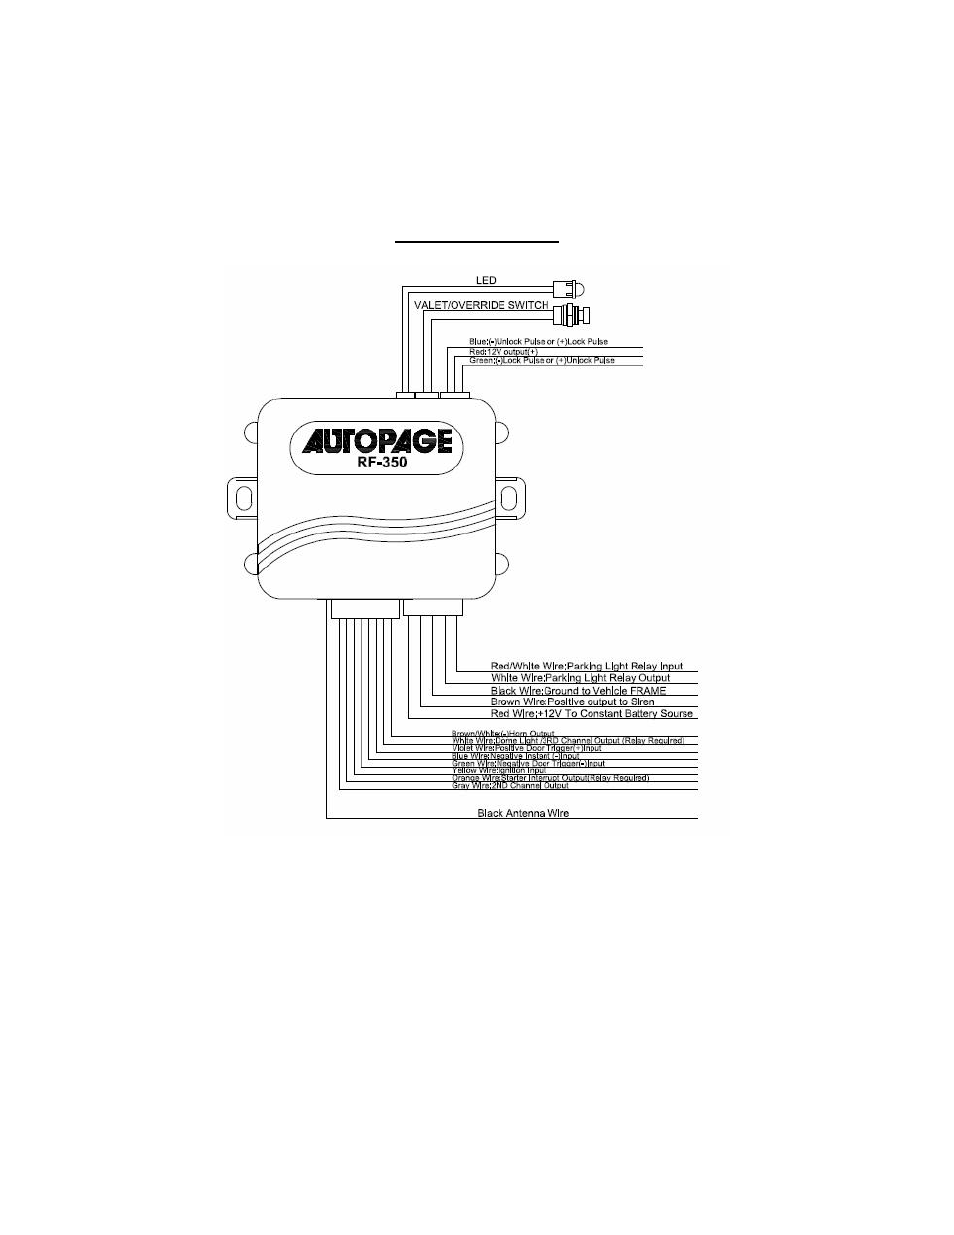 auto page rf-350 user manual | page 2 / 16  manuals directory